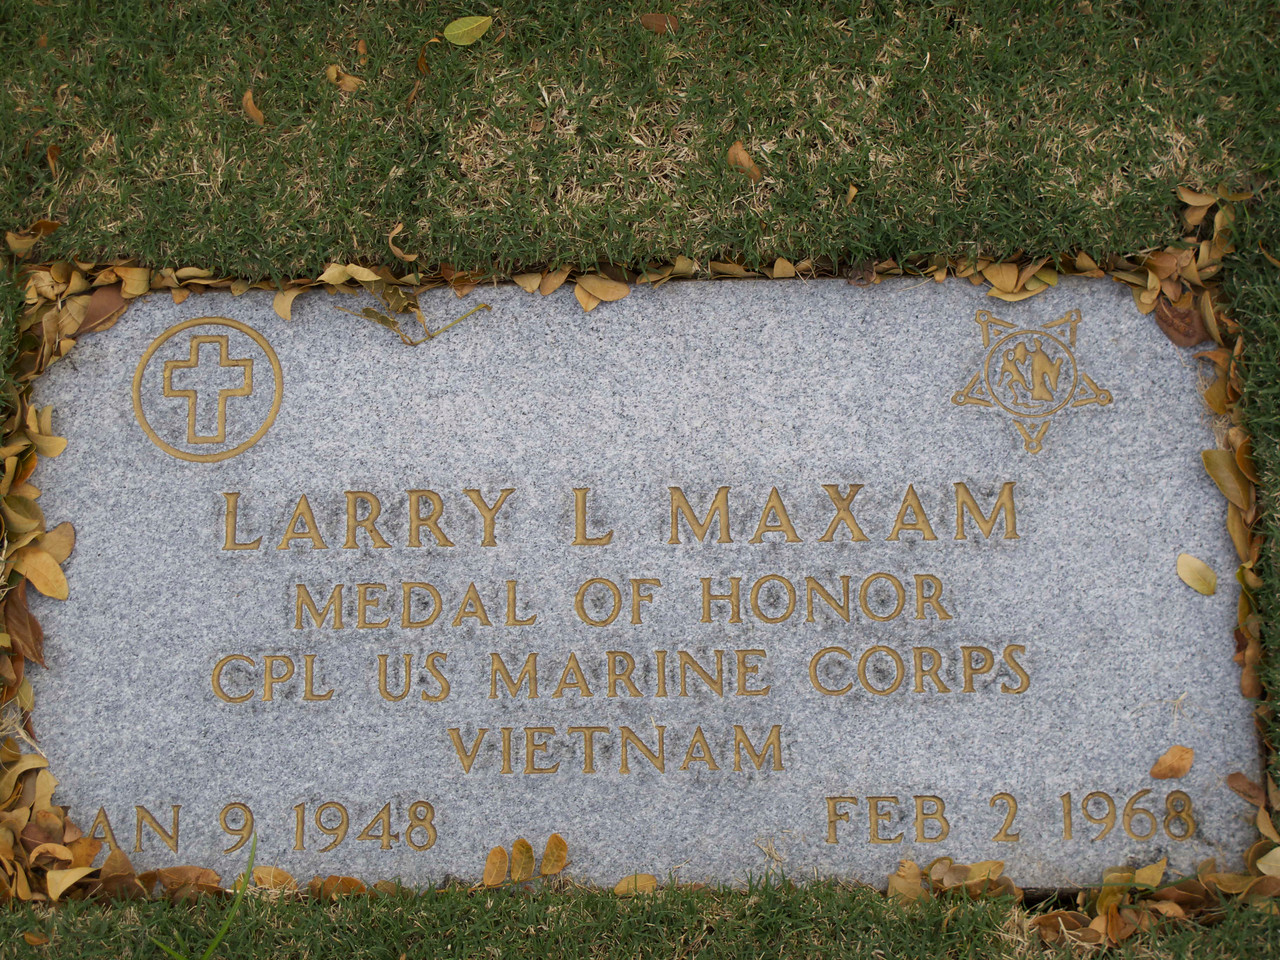 "His citation for the acts which led to his award <a href=""http://en.wikipedia.org/wiki/Larry_L._Maxam#Medal_of_Honor_citation"">is here</a>. He was 20 years old. The symbol at top left is the Christian Cross, and the star on the right is the symbol representing the Medal of Honor."